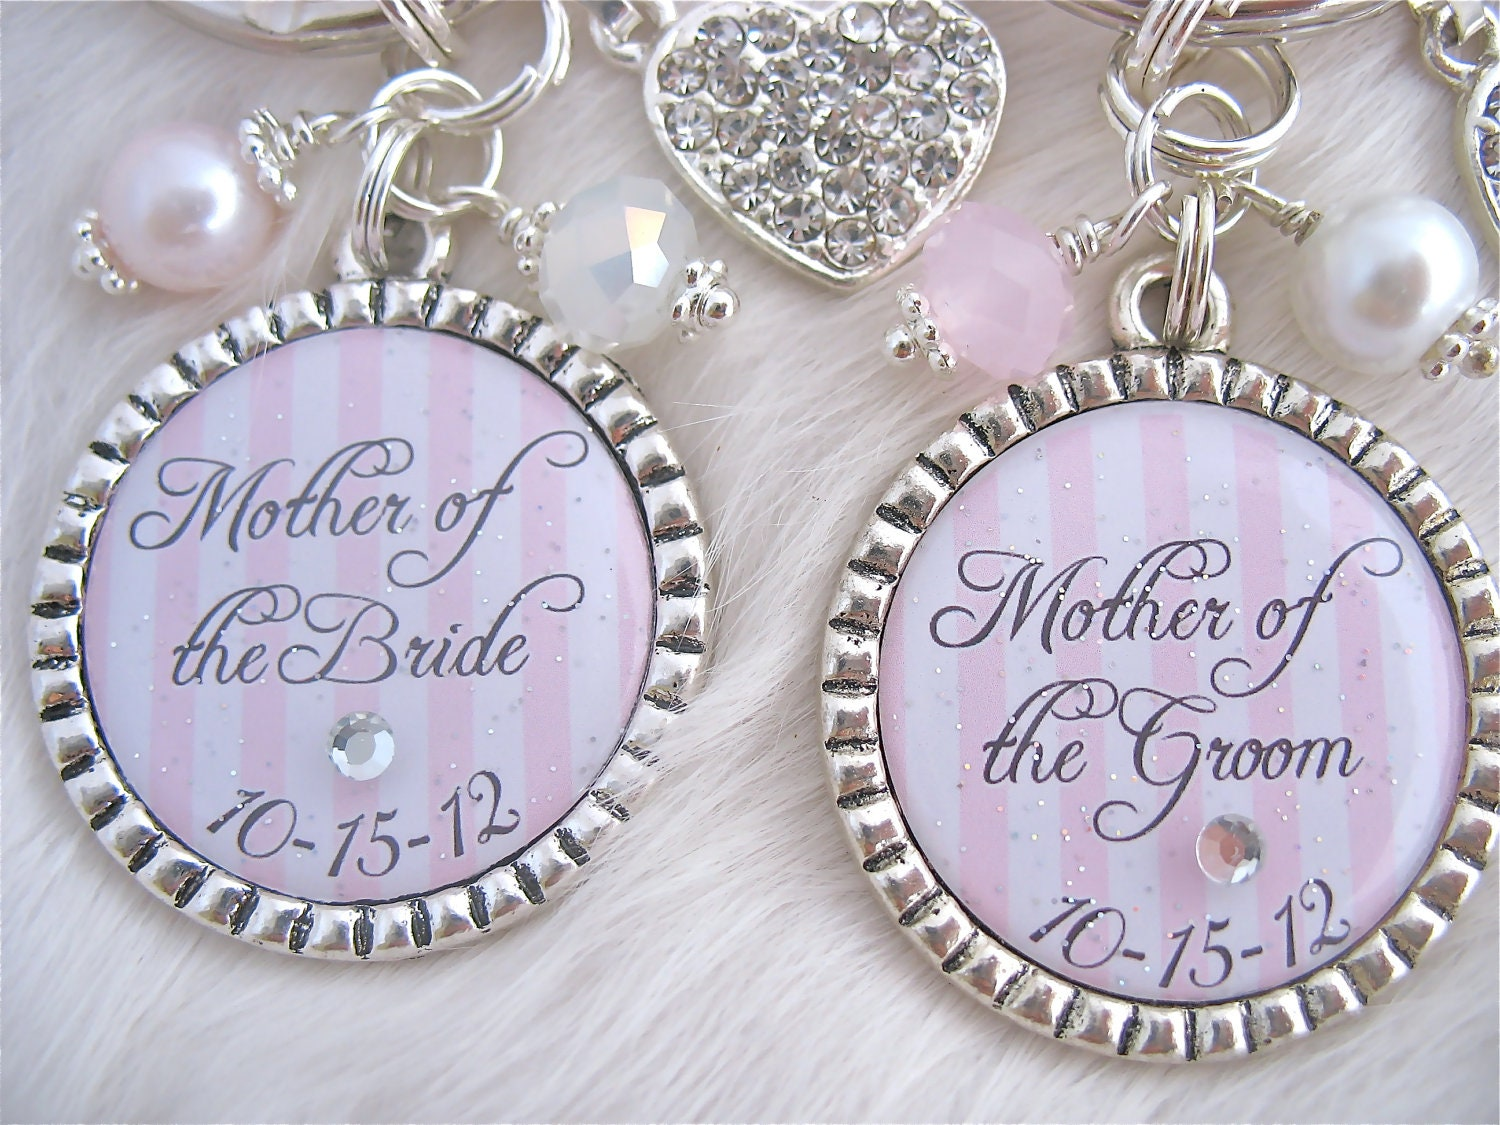 Wedding Gift For Mother Of The Bride And Groom : MOTHER of the BRIDE Gift Mother of the Groom by MyBlueSnowflake